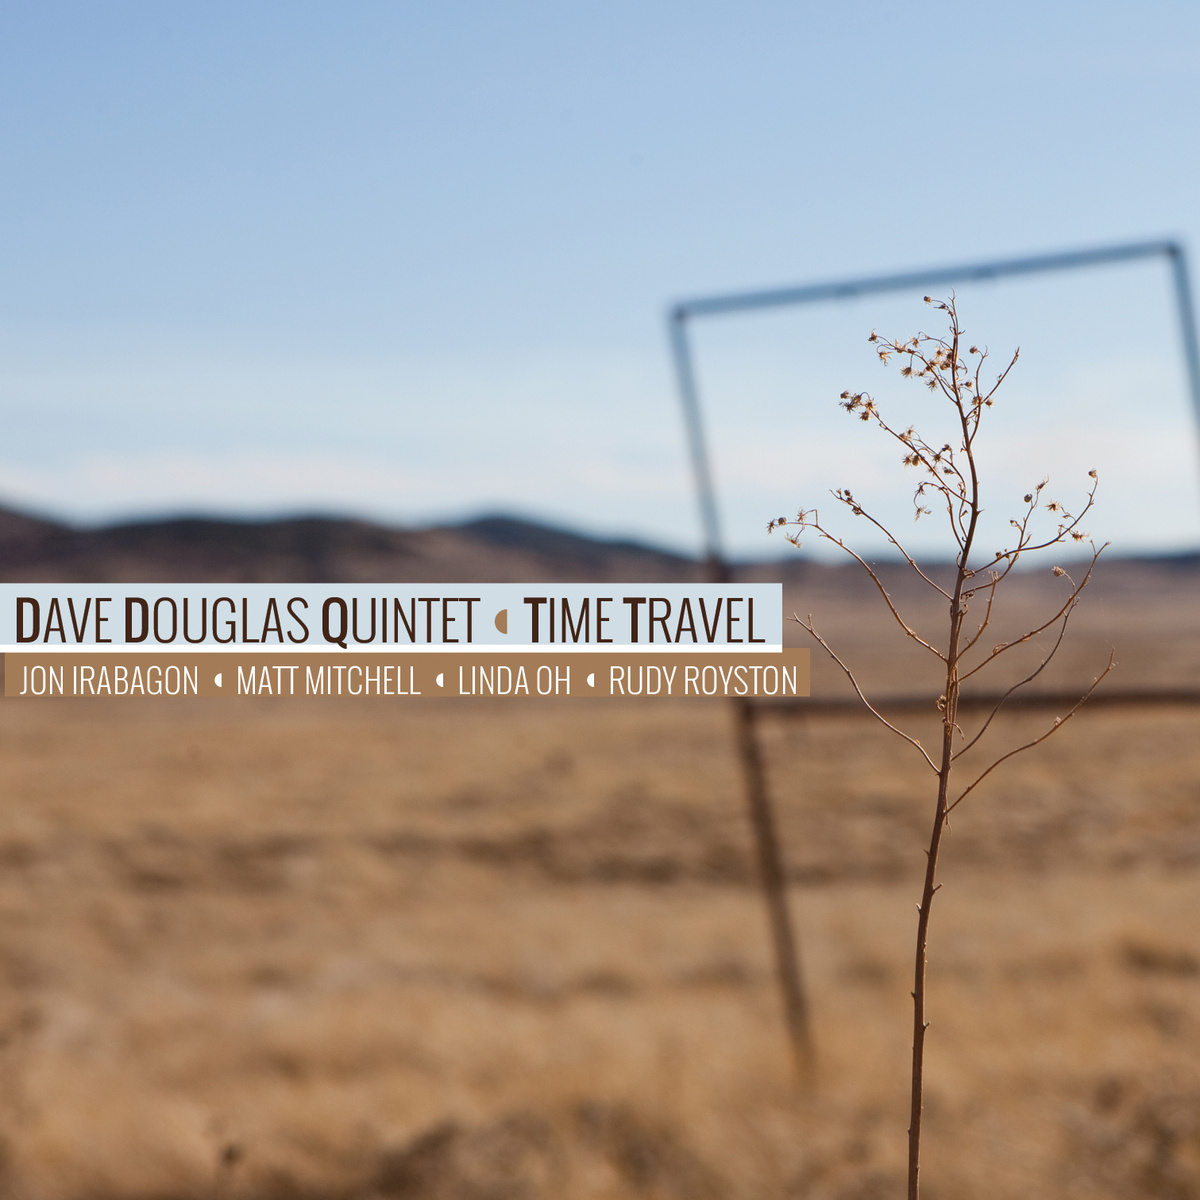 Dave Douglas Quintet - Time Travel